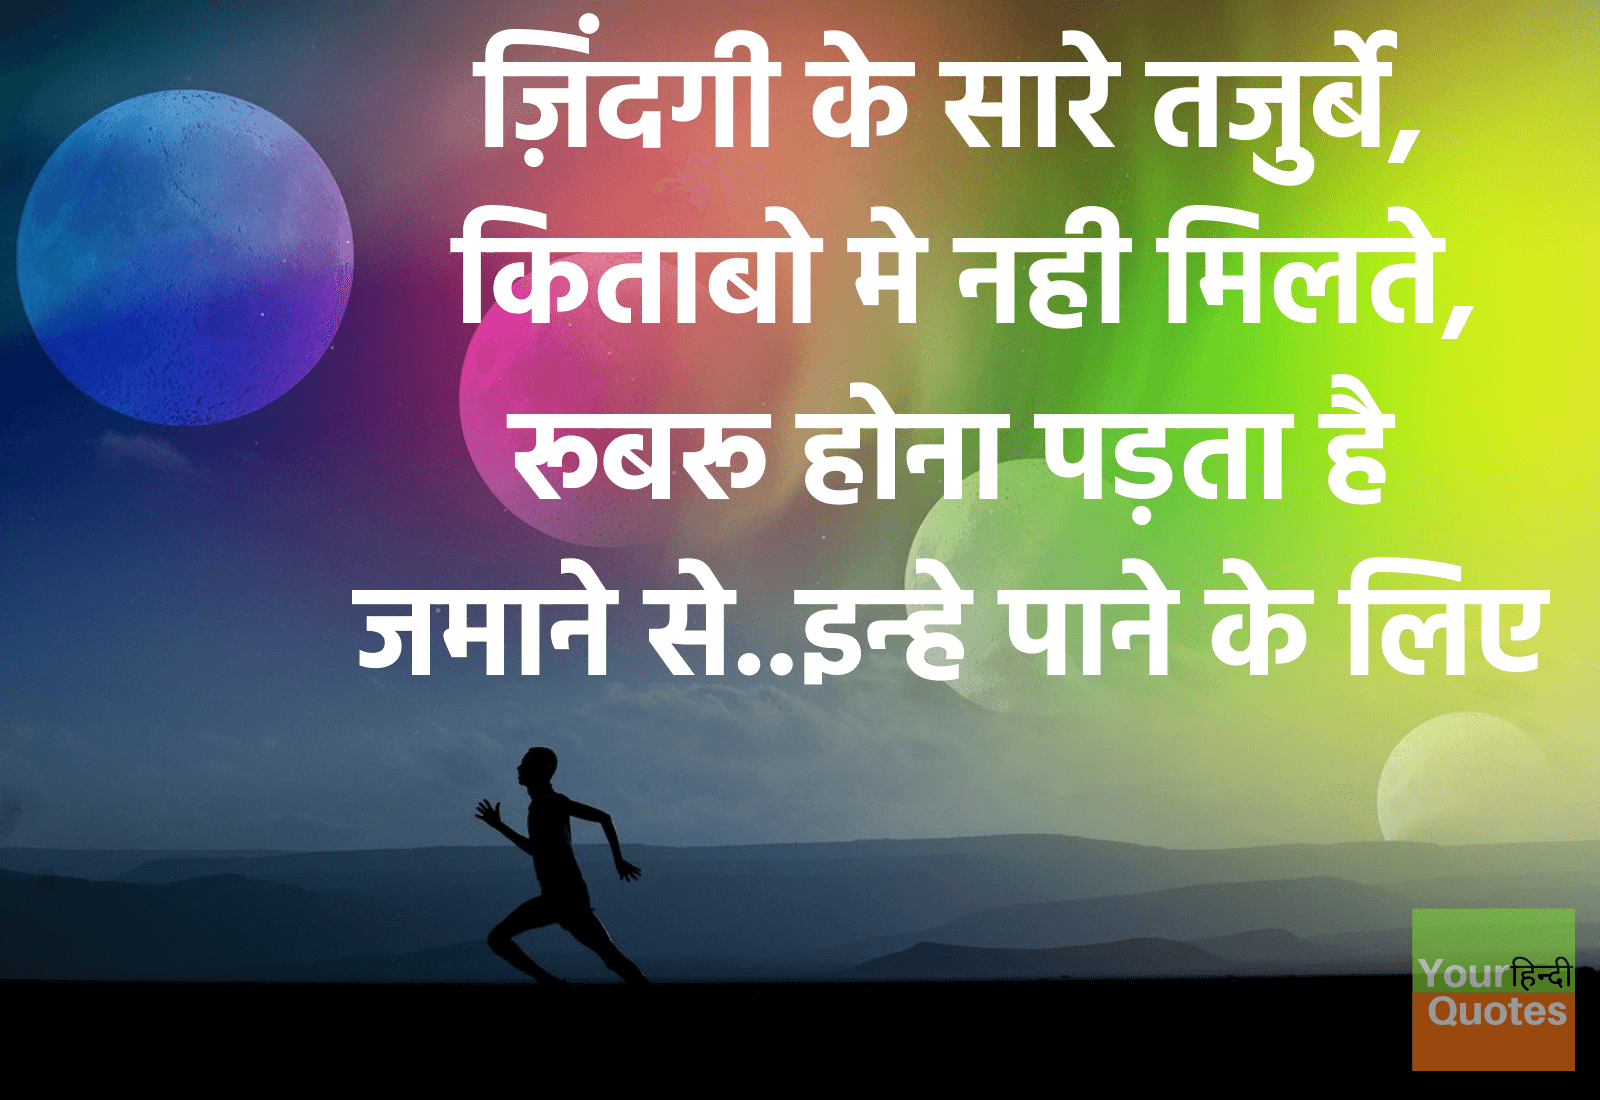 Hindi Motivational Quotes Photos